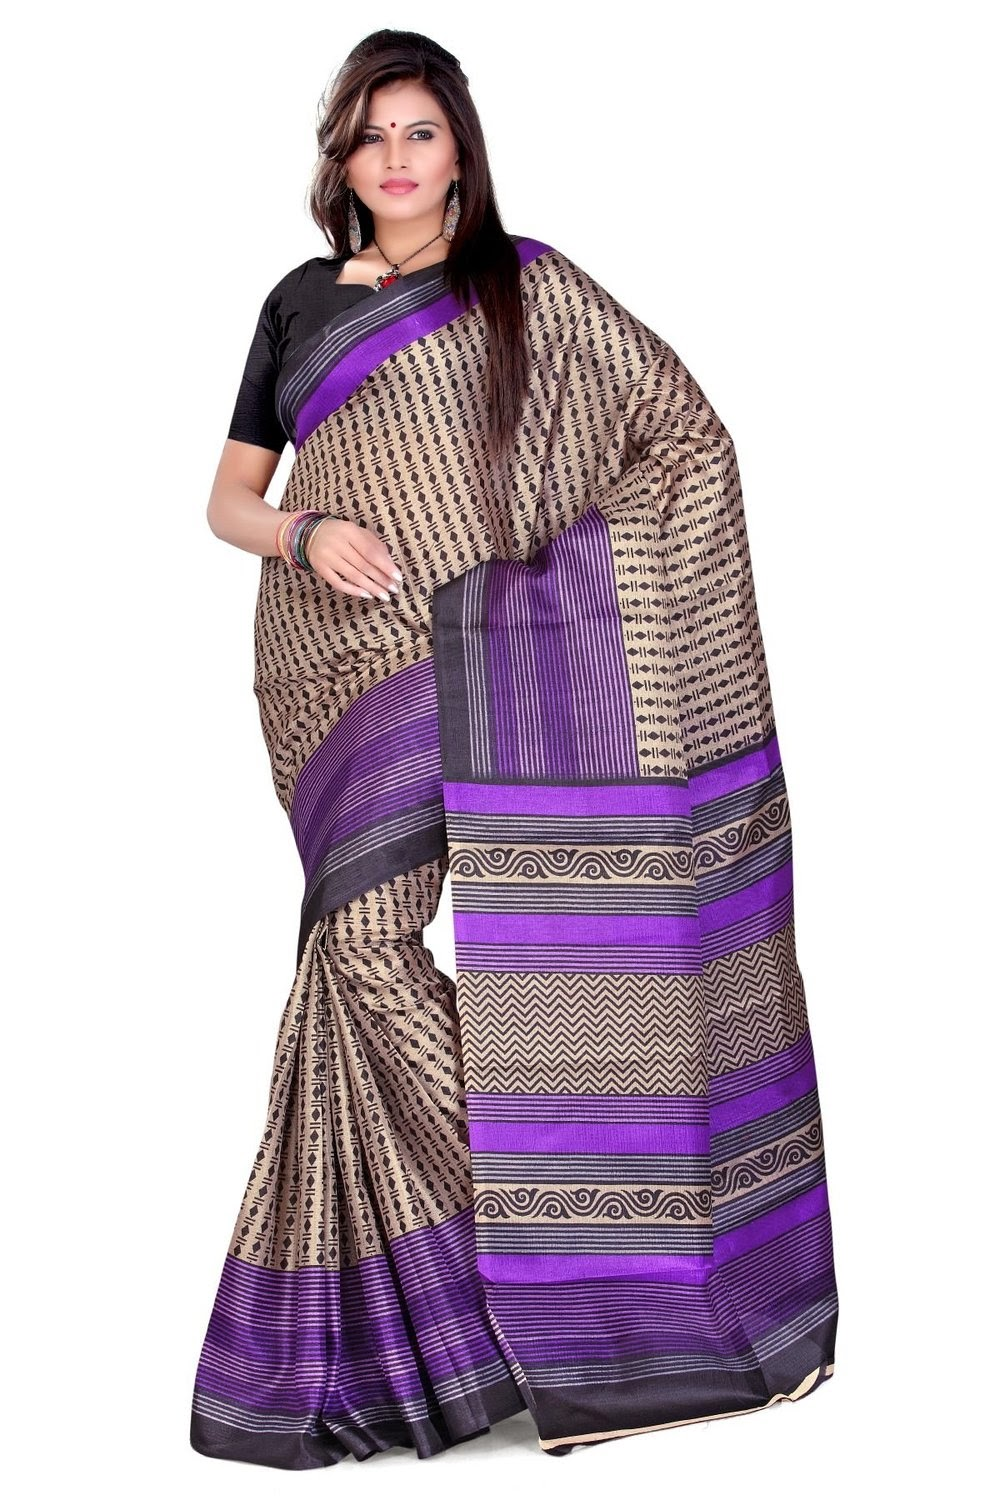 Amazon : Buy Branded Cotton, Silk and printed Sari at FLAT Rs. 399 only